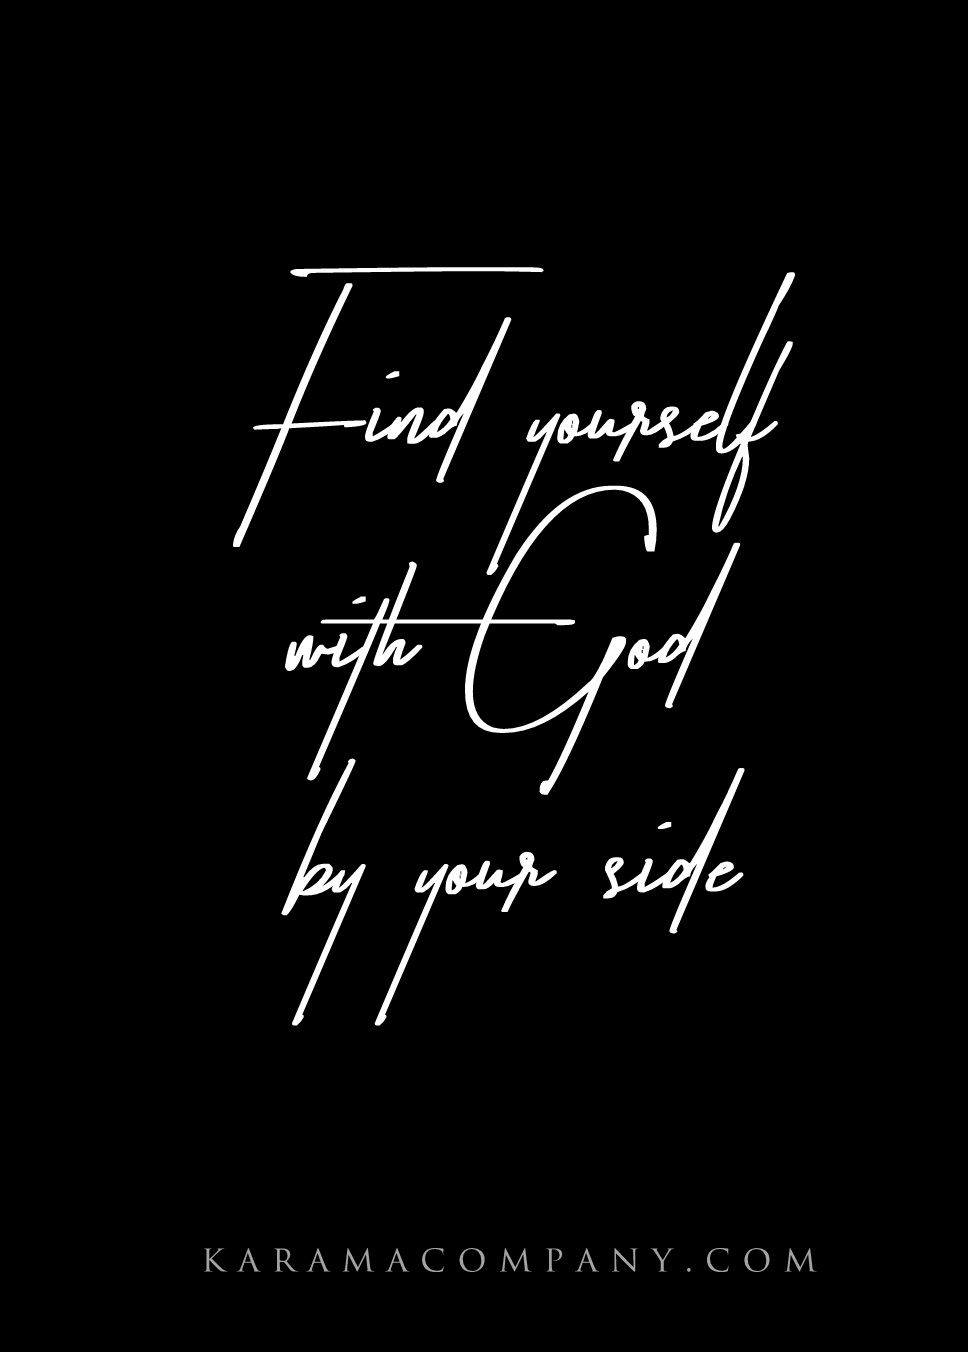 Find Yourself With God By Your Side Karamacompany Com Be Yourself Quotes Words True Quotes God is love wallpaper black